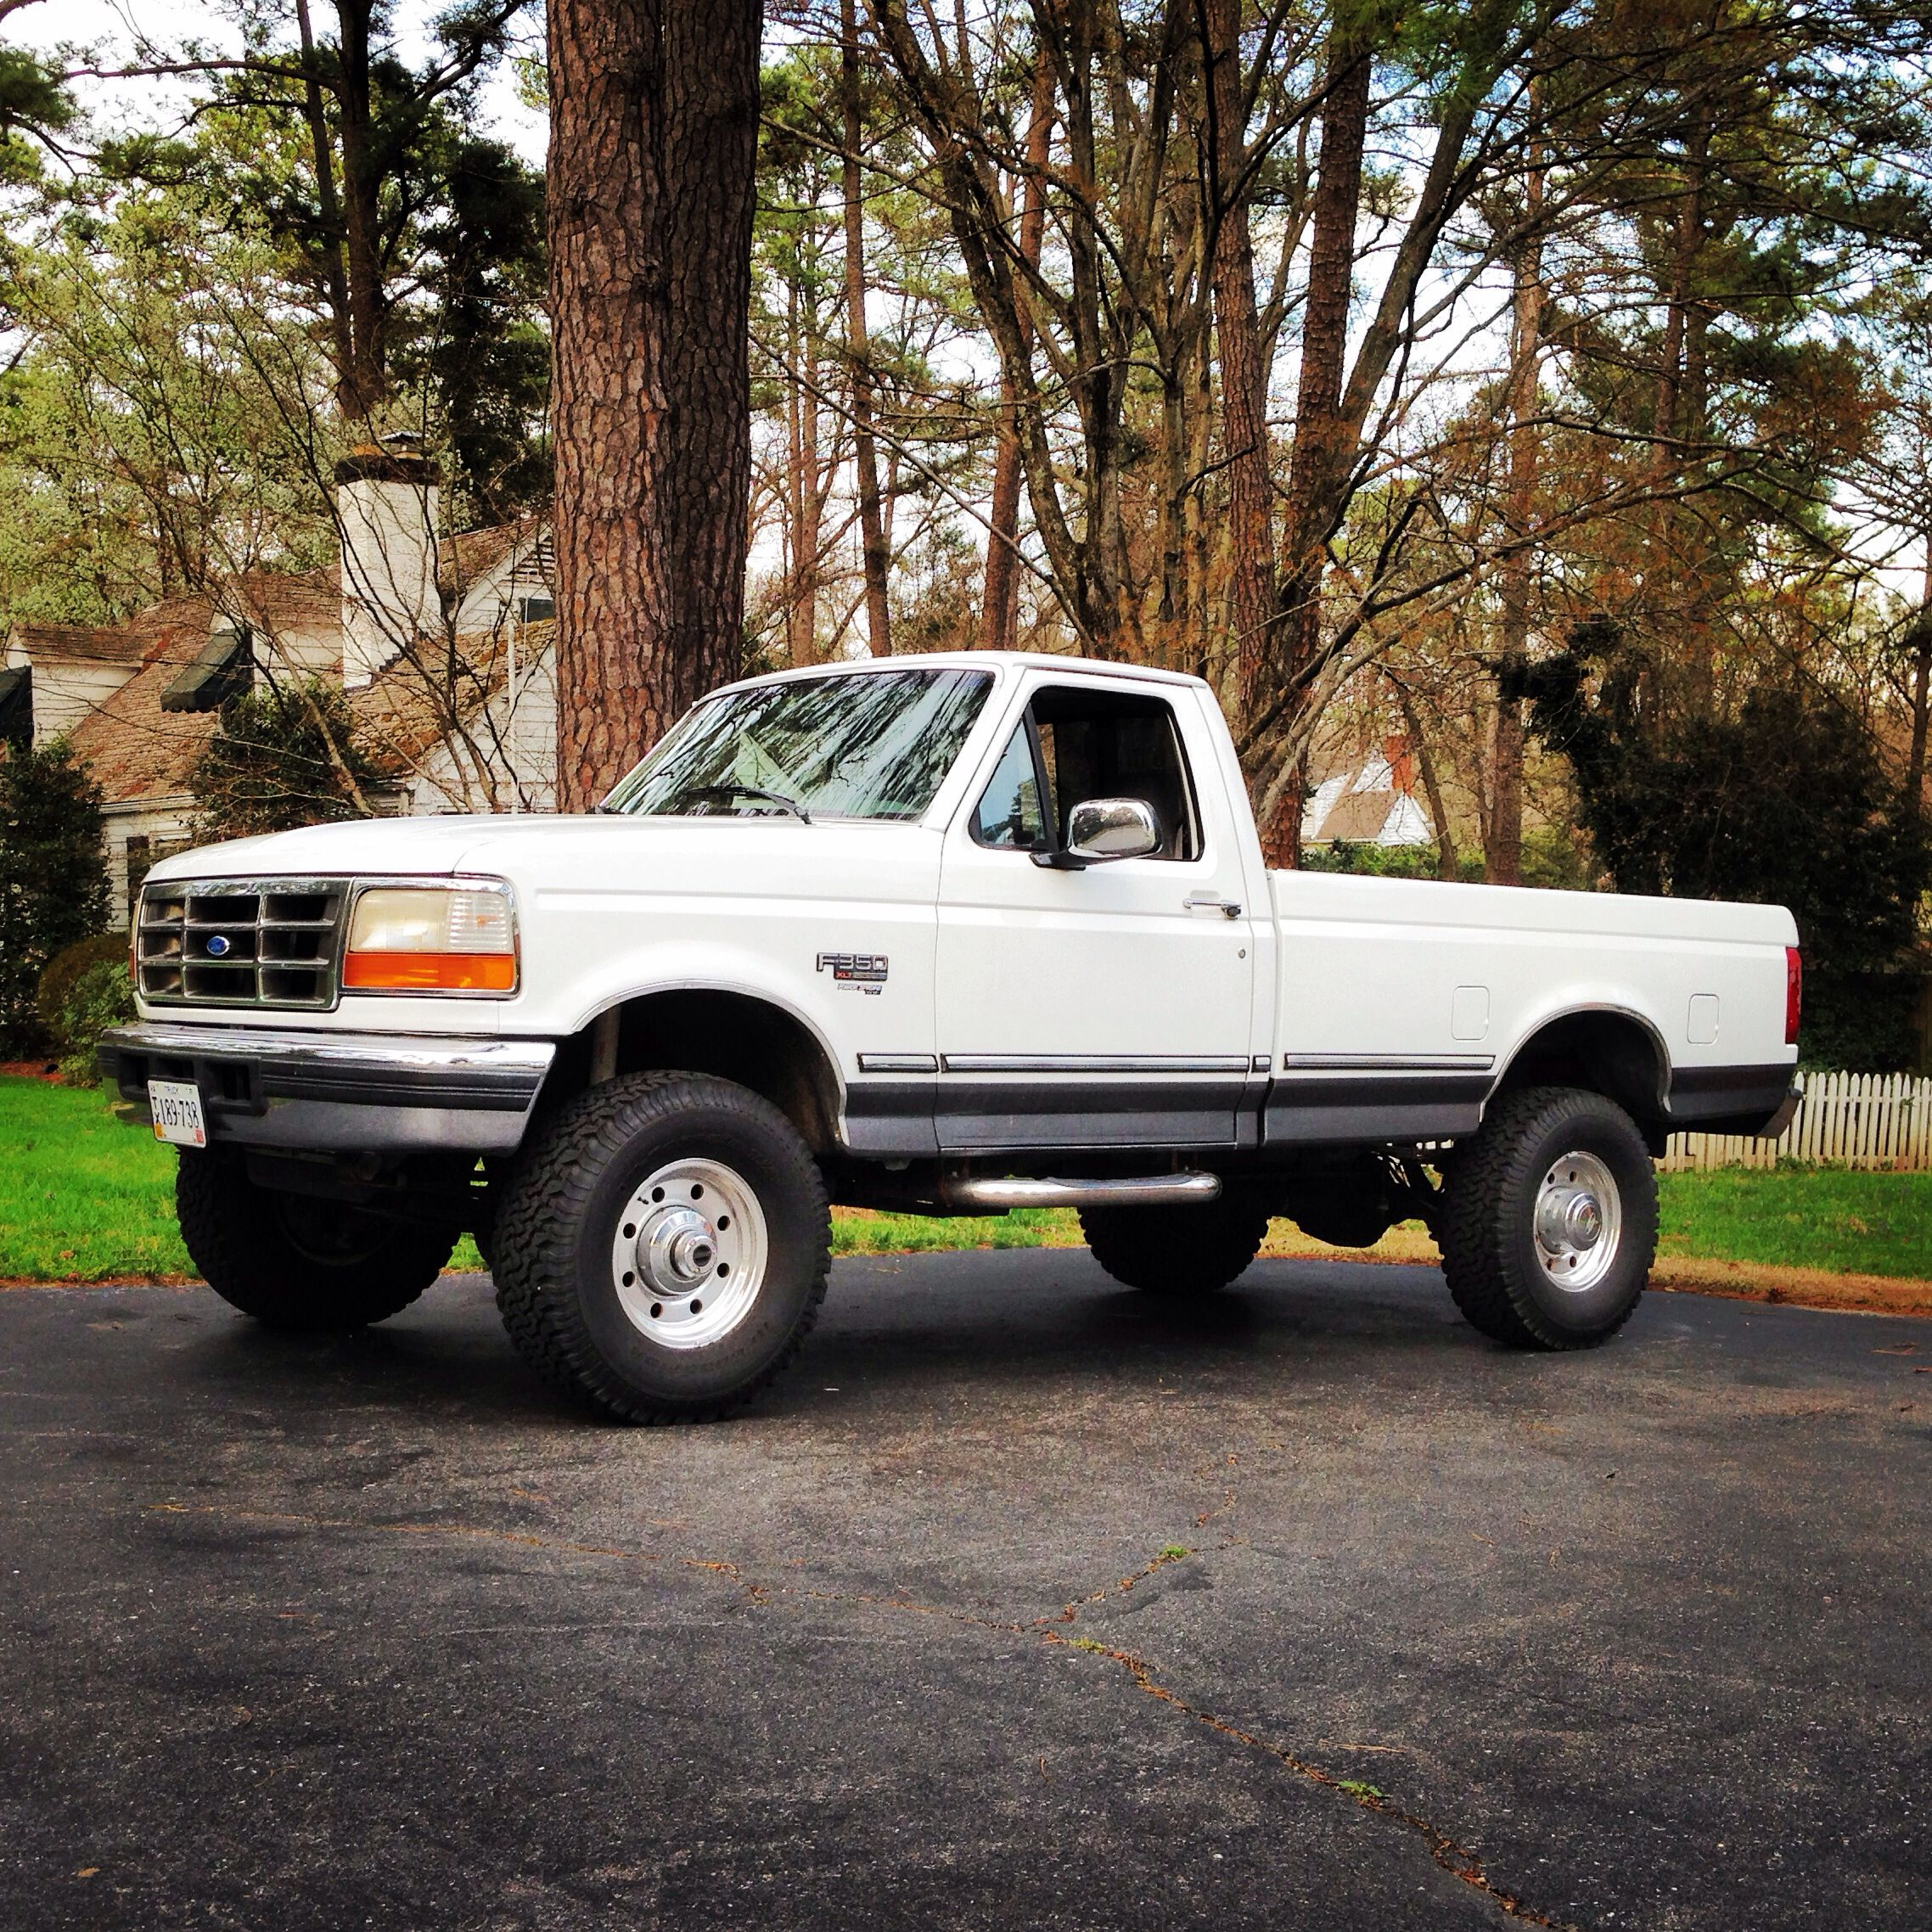 1997 Ford F350 Powerstroke diesel regular cab.